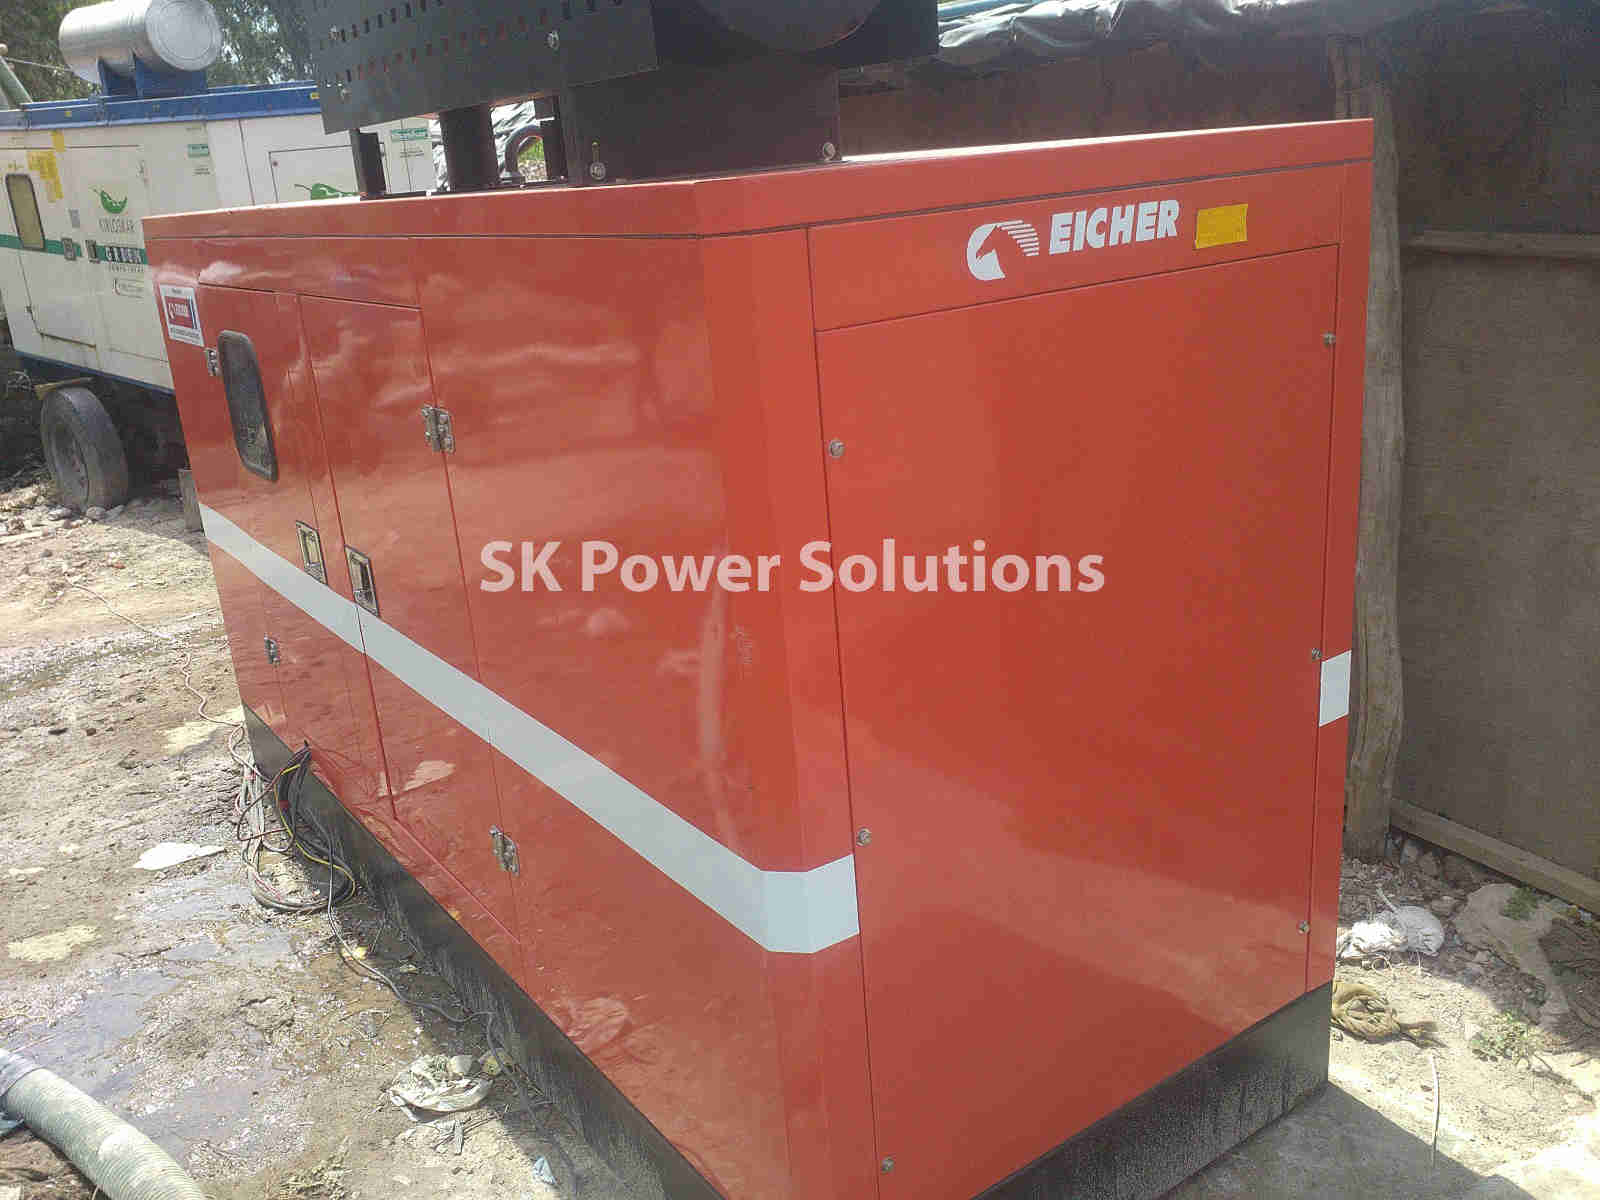 SK Power Solutions